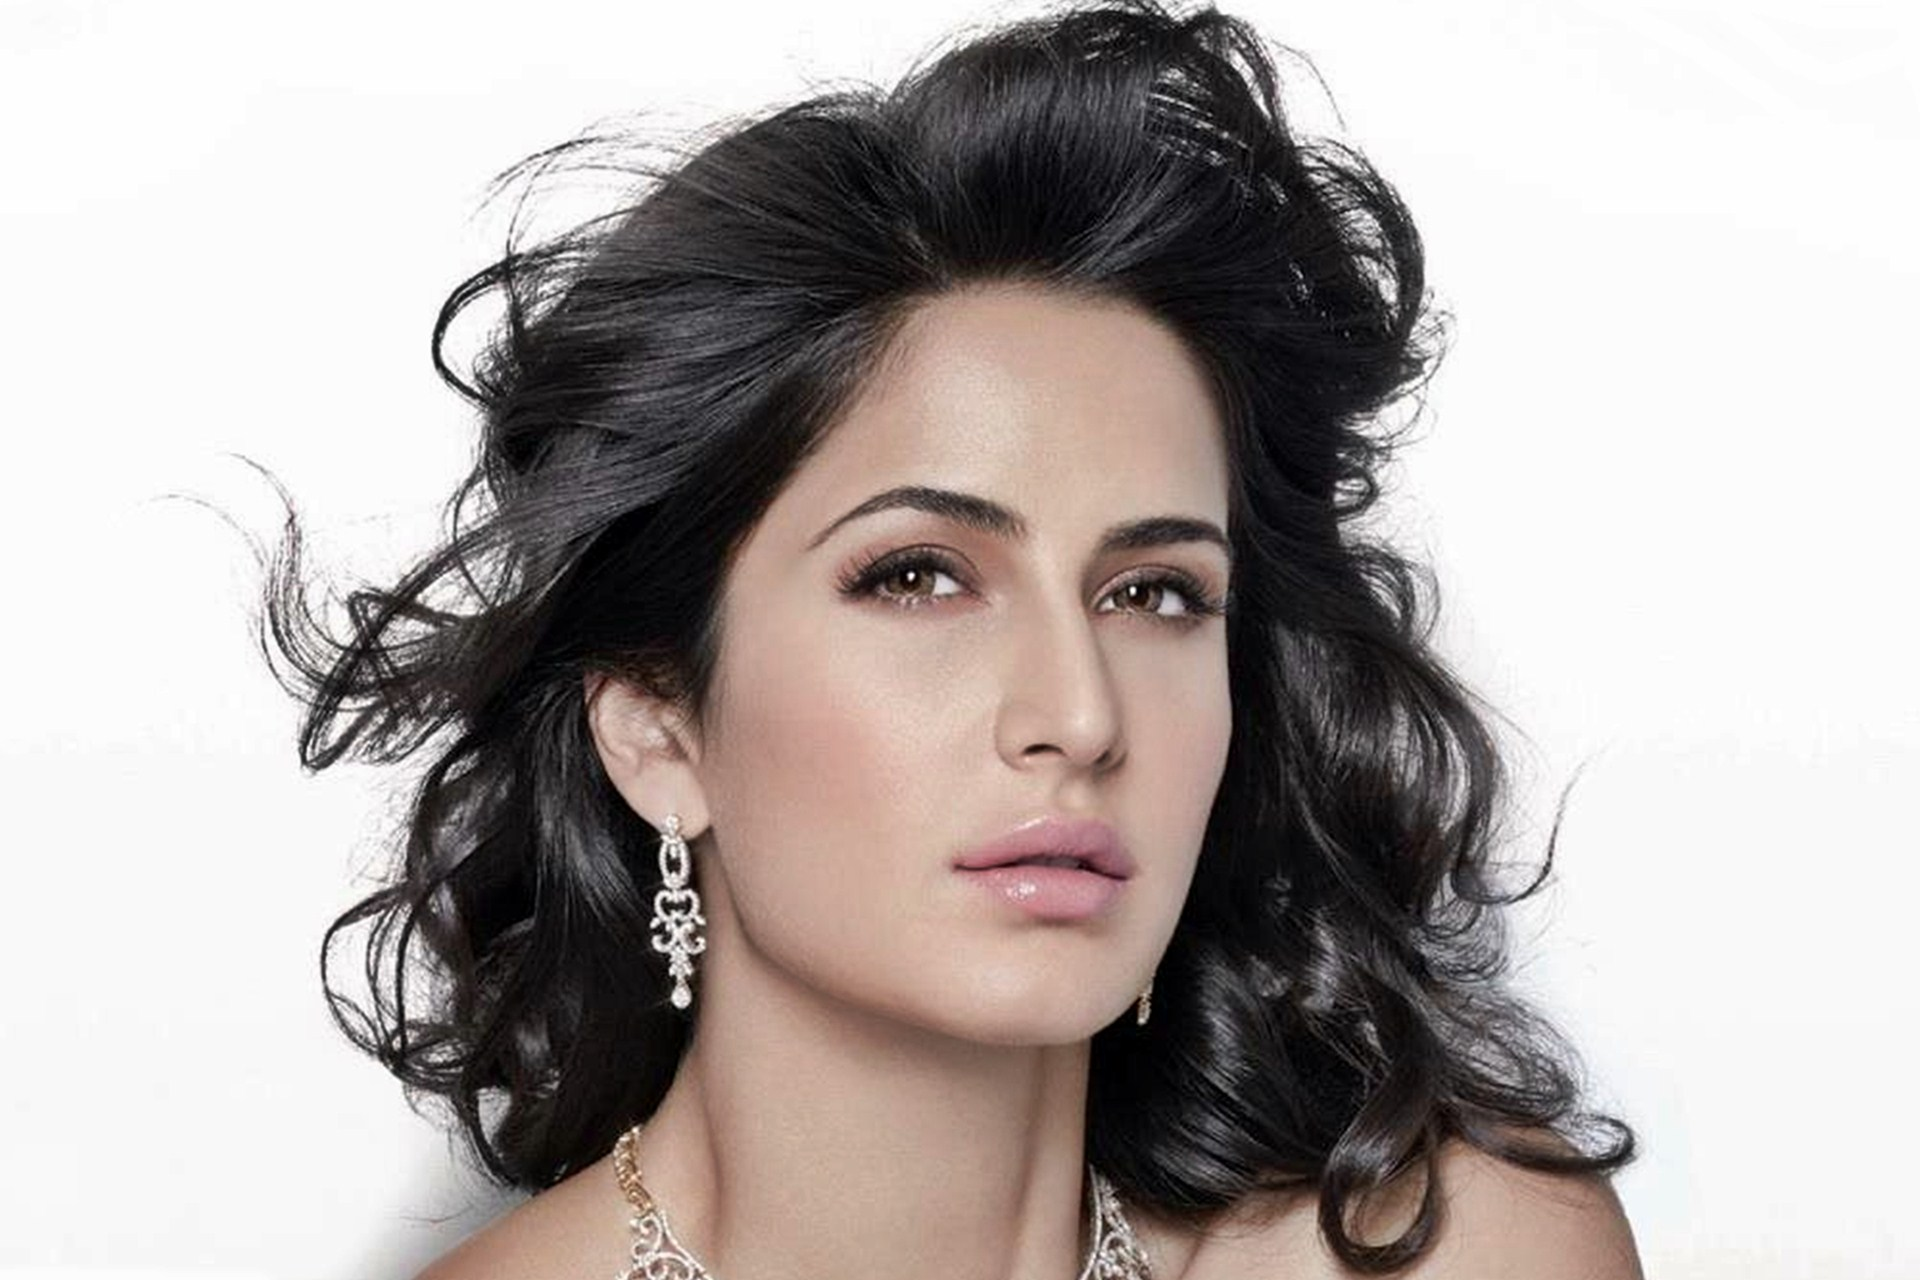 Katrina kaif 2015 6.jpg | HD Wallpapers, HD images, HD Pictures